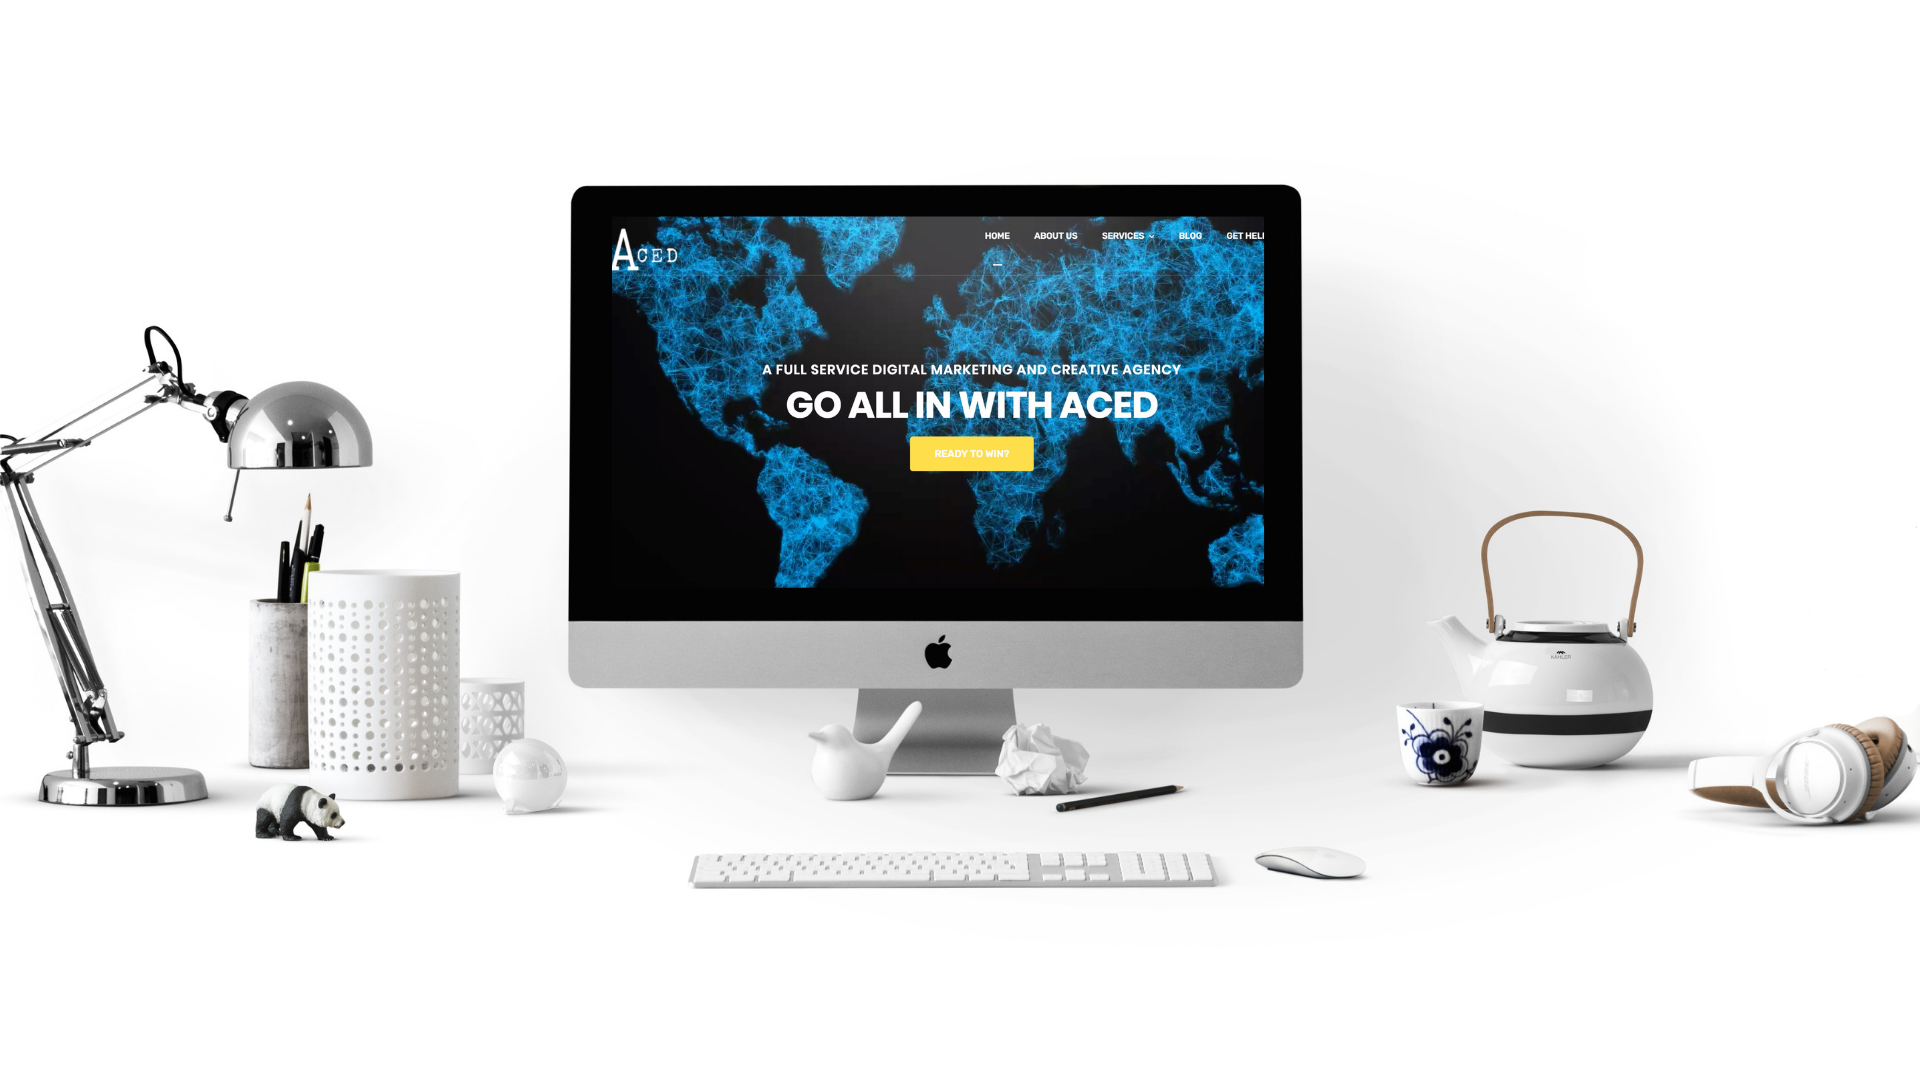 McConnell, West Virginia website design and development service by aced agency